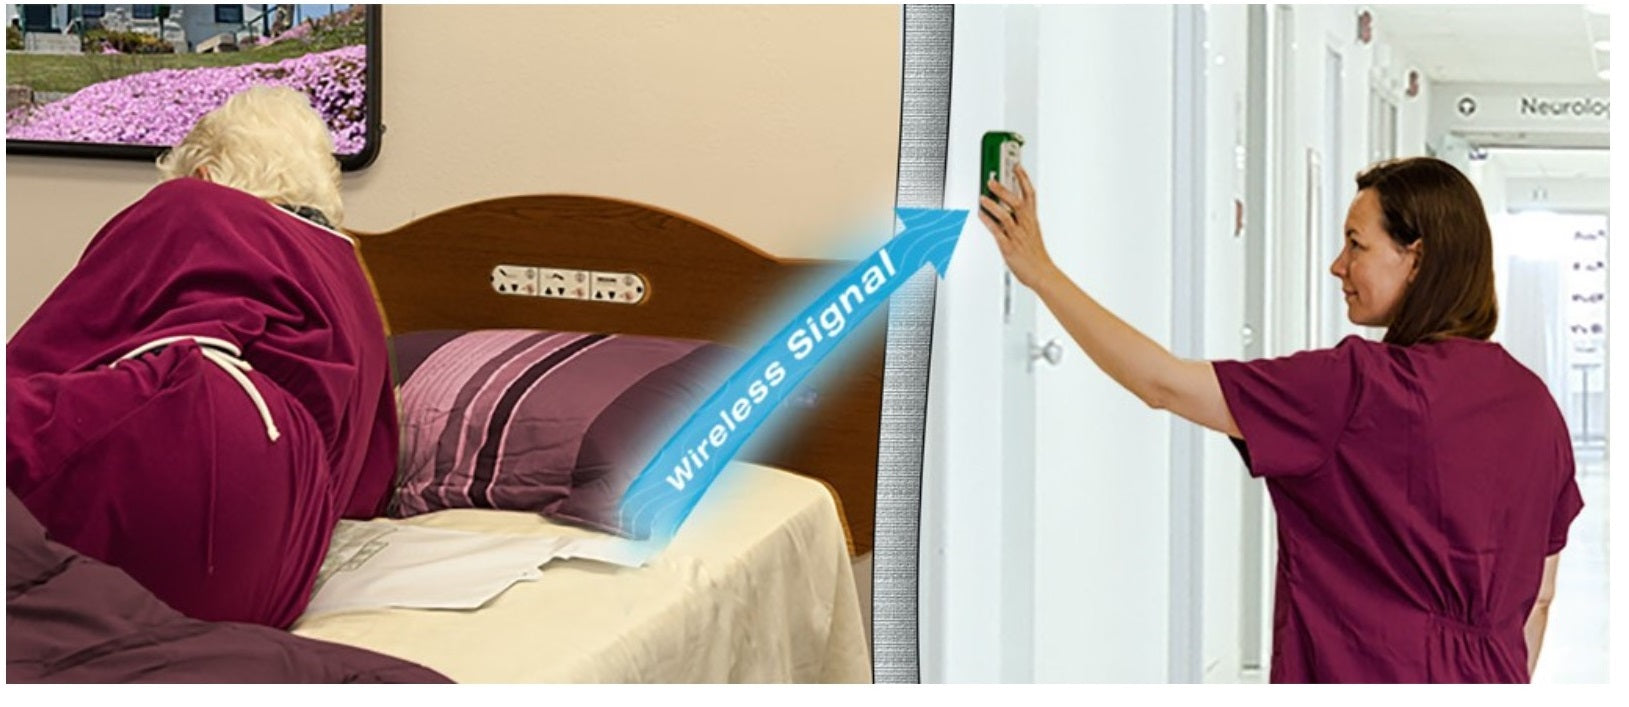 Pleasant Cordfree Alarm With Wireless Bed And Chair Pads Short Links Chair Design For Home Short Linksinfo